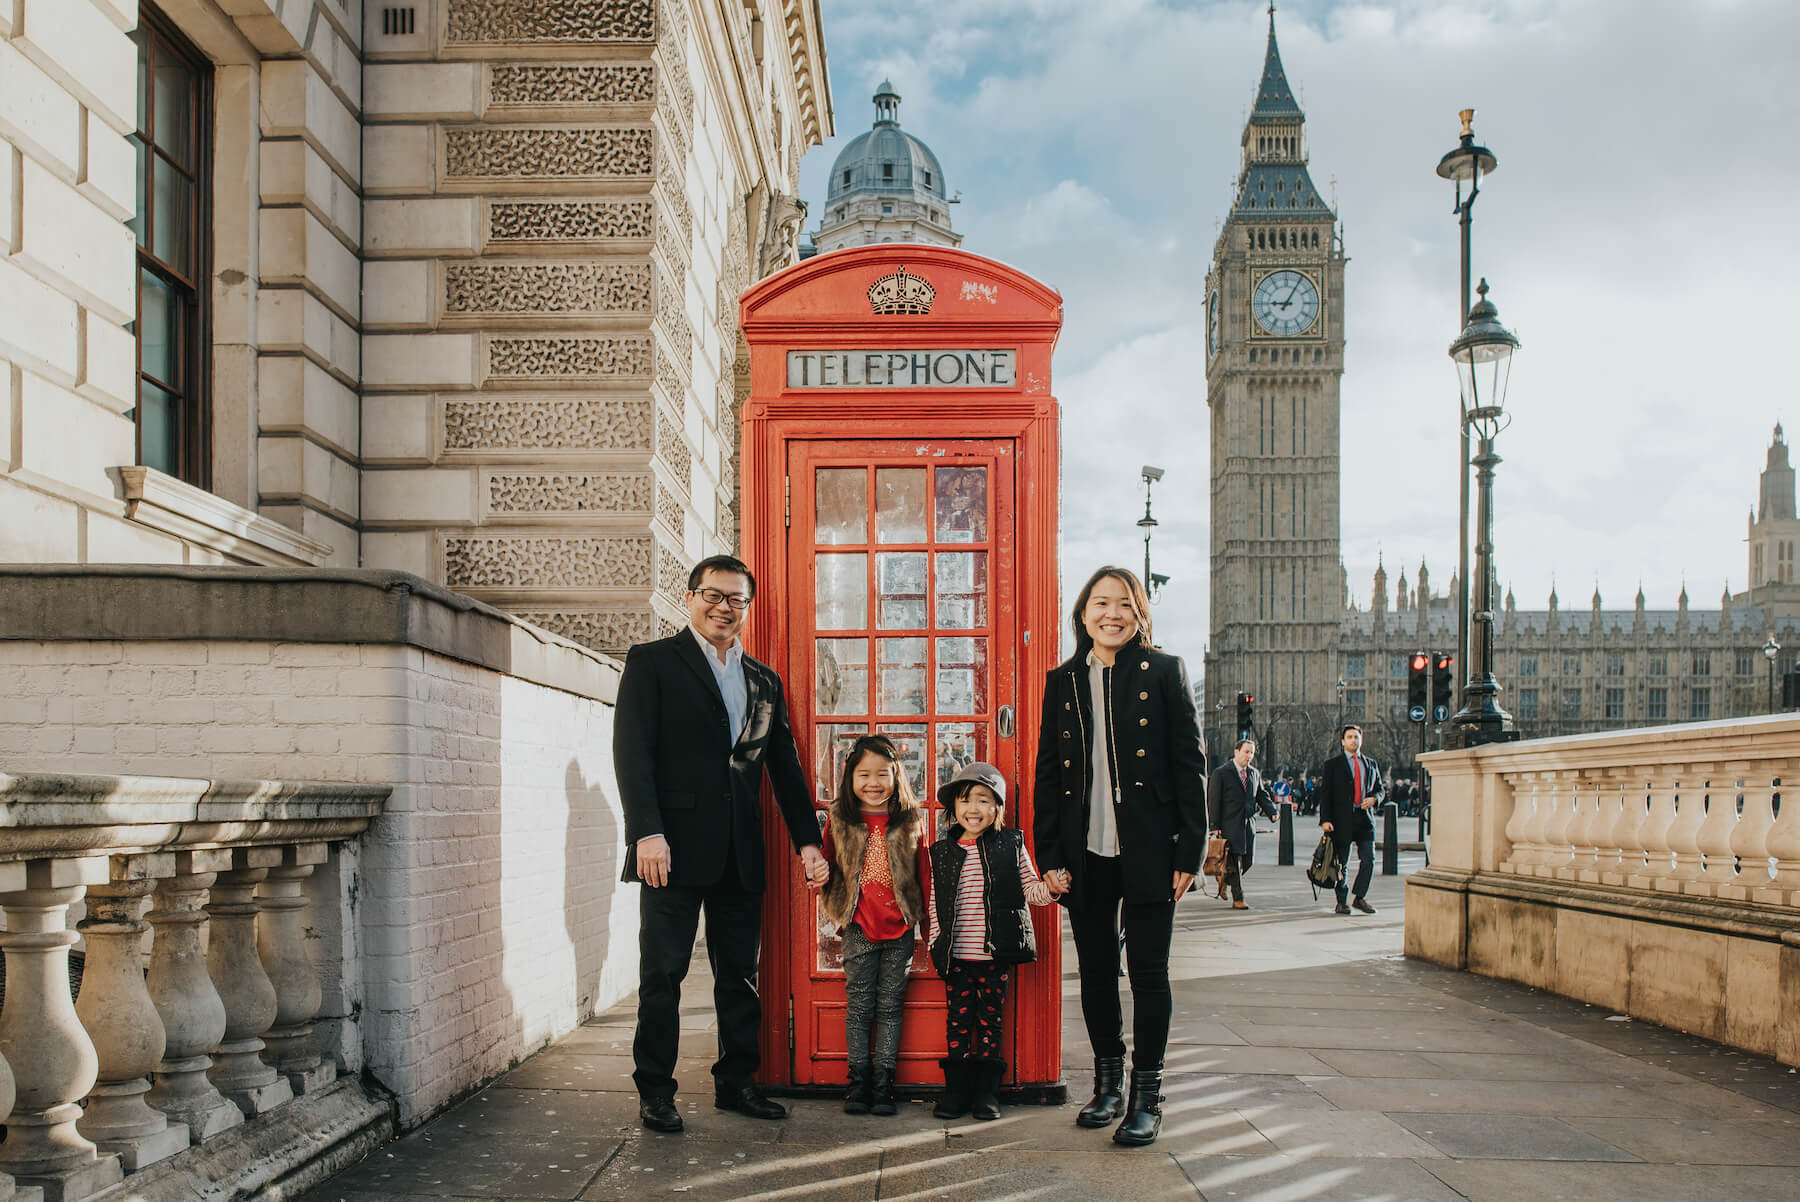 family standing in front of a red phone booth in London, England